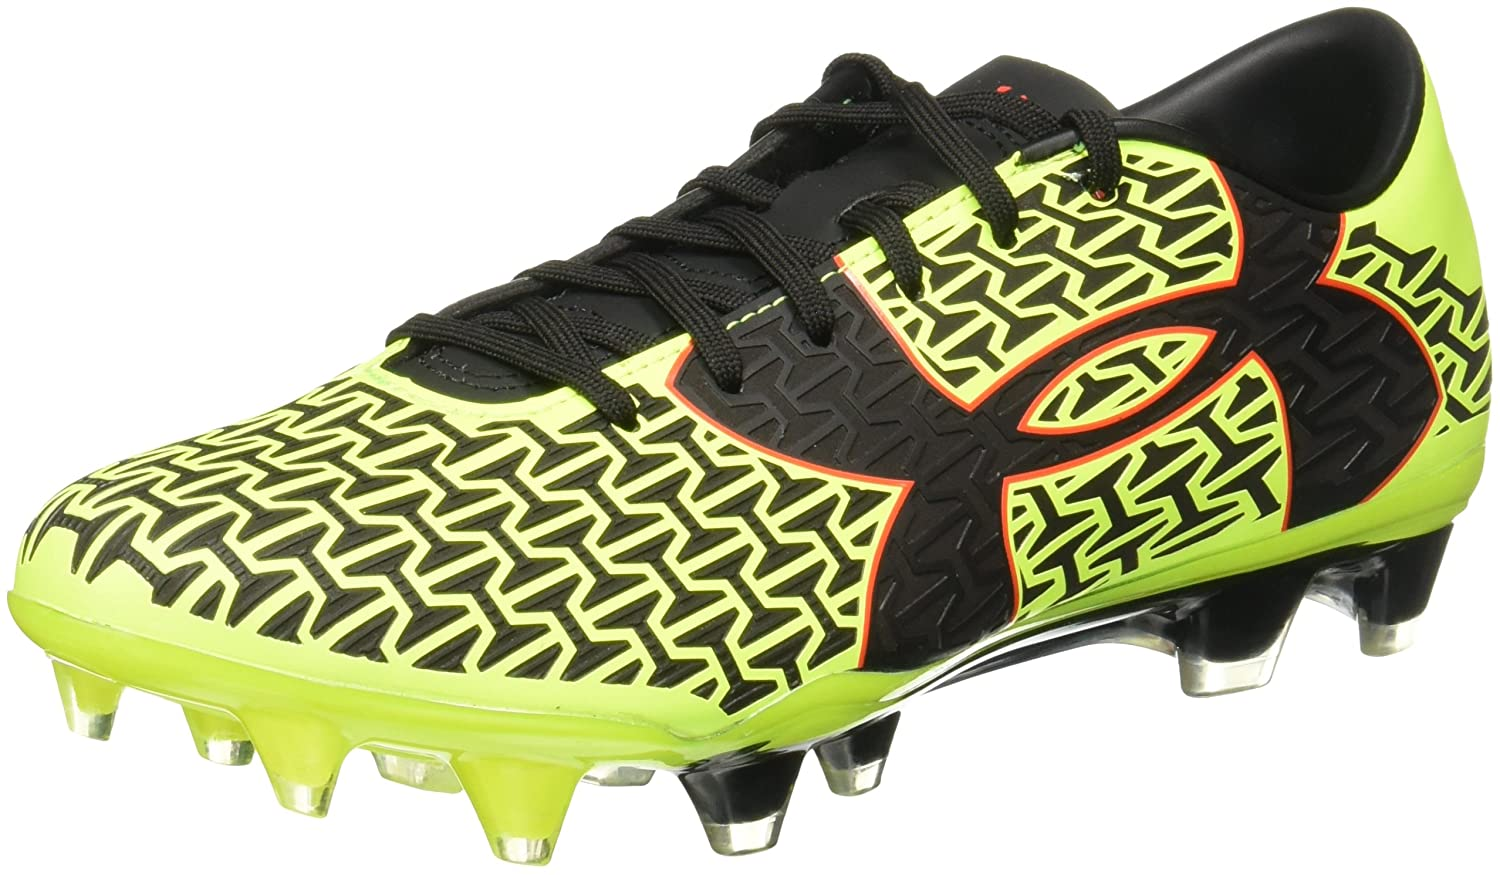 Under Armour UA CORESPEED Force 2.0 HIGH-VIS Yellow